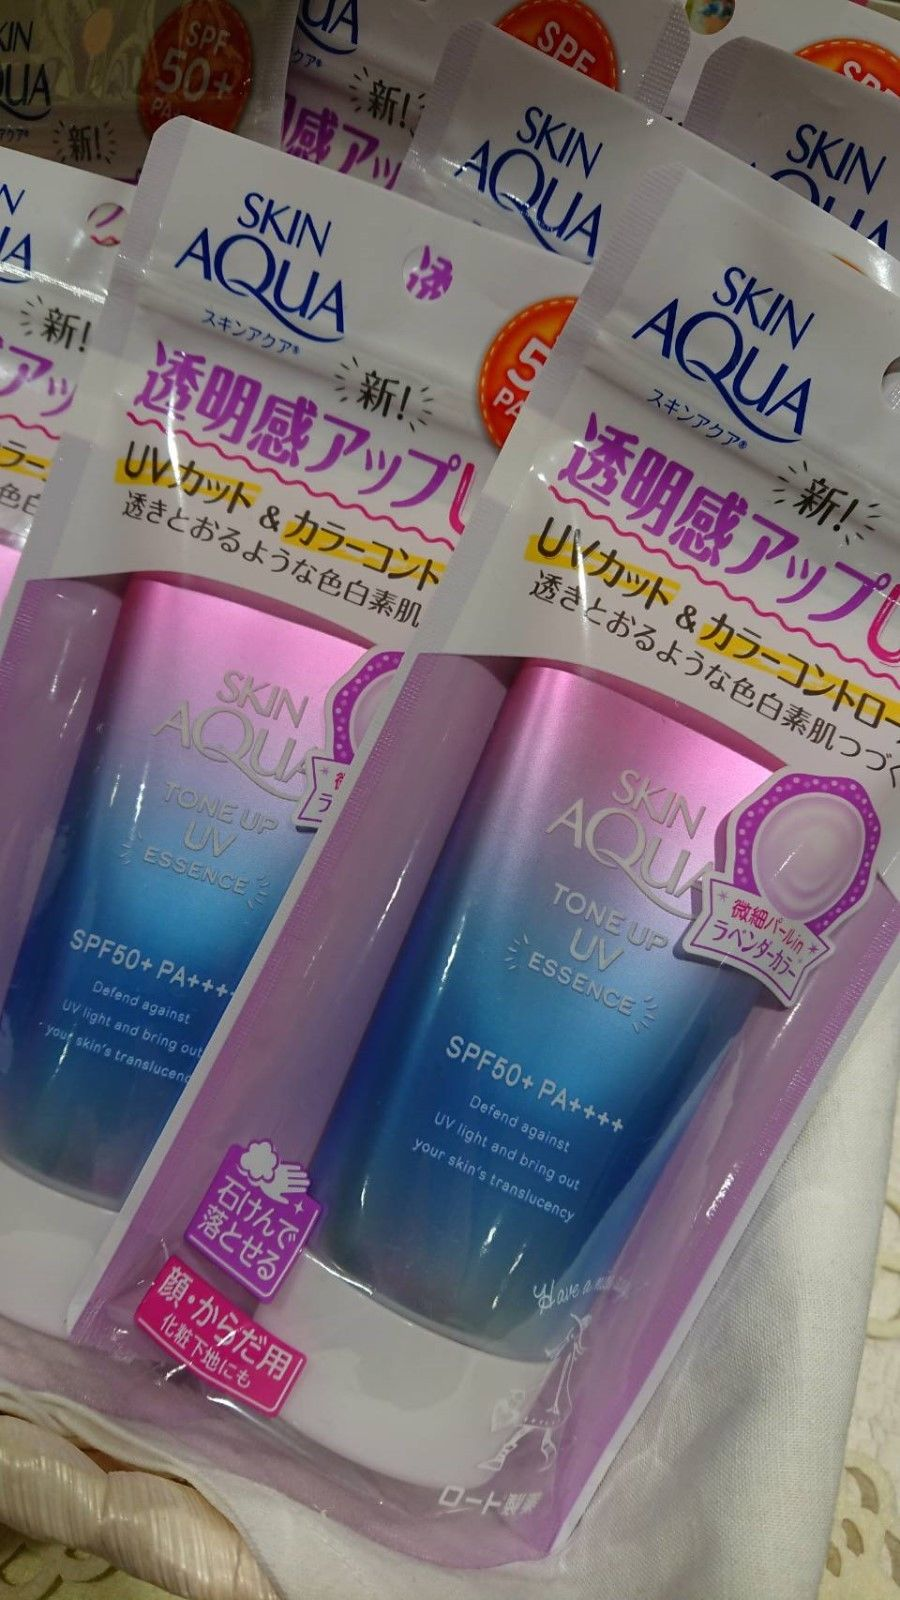 ROHTO Skin Aqua Tone Up UV Essence sunscreen control color SPF50+/PA++++